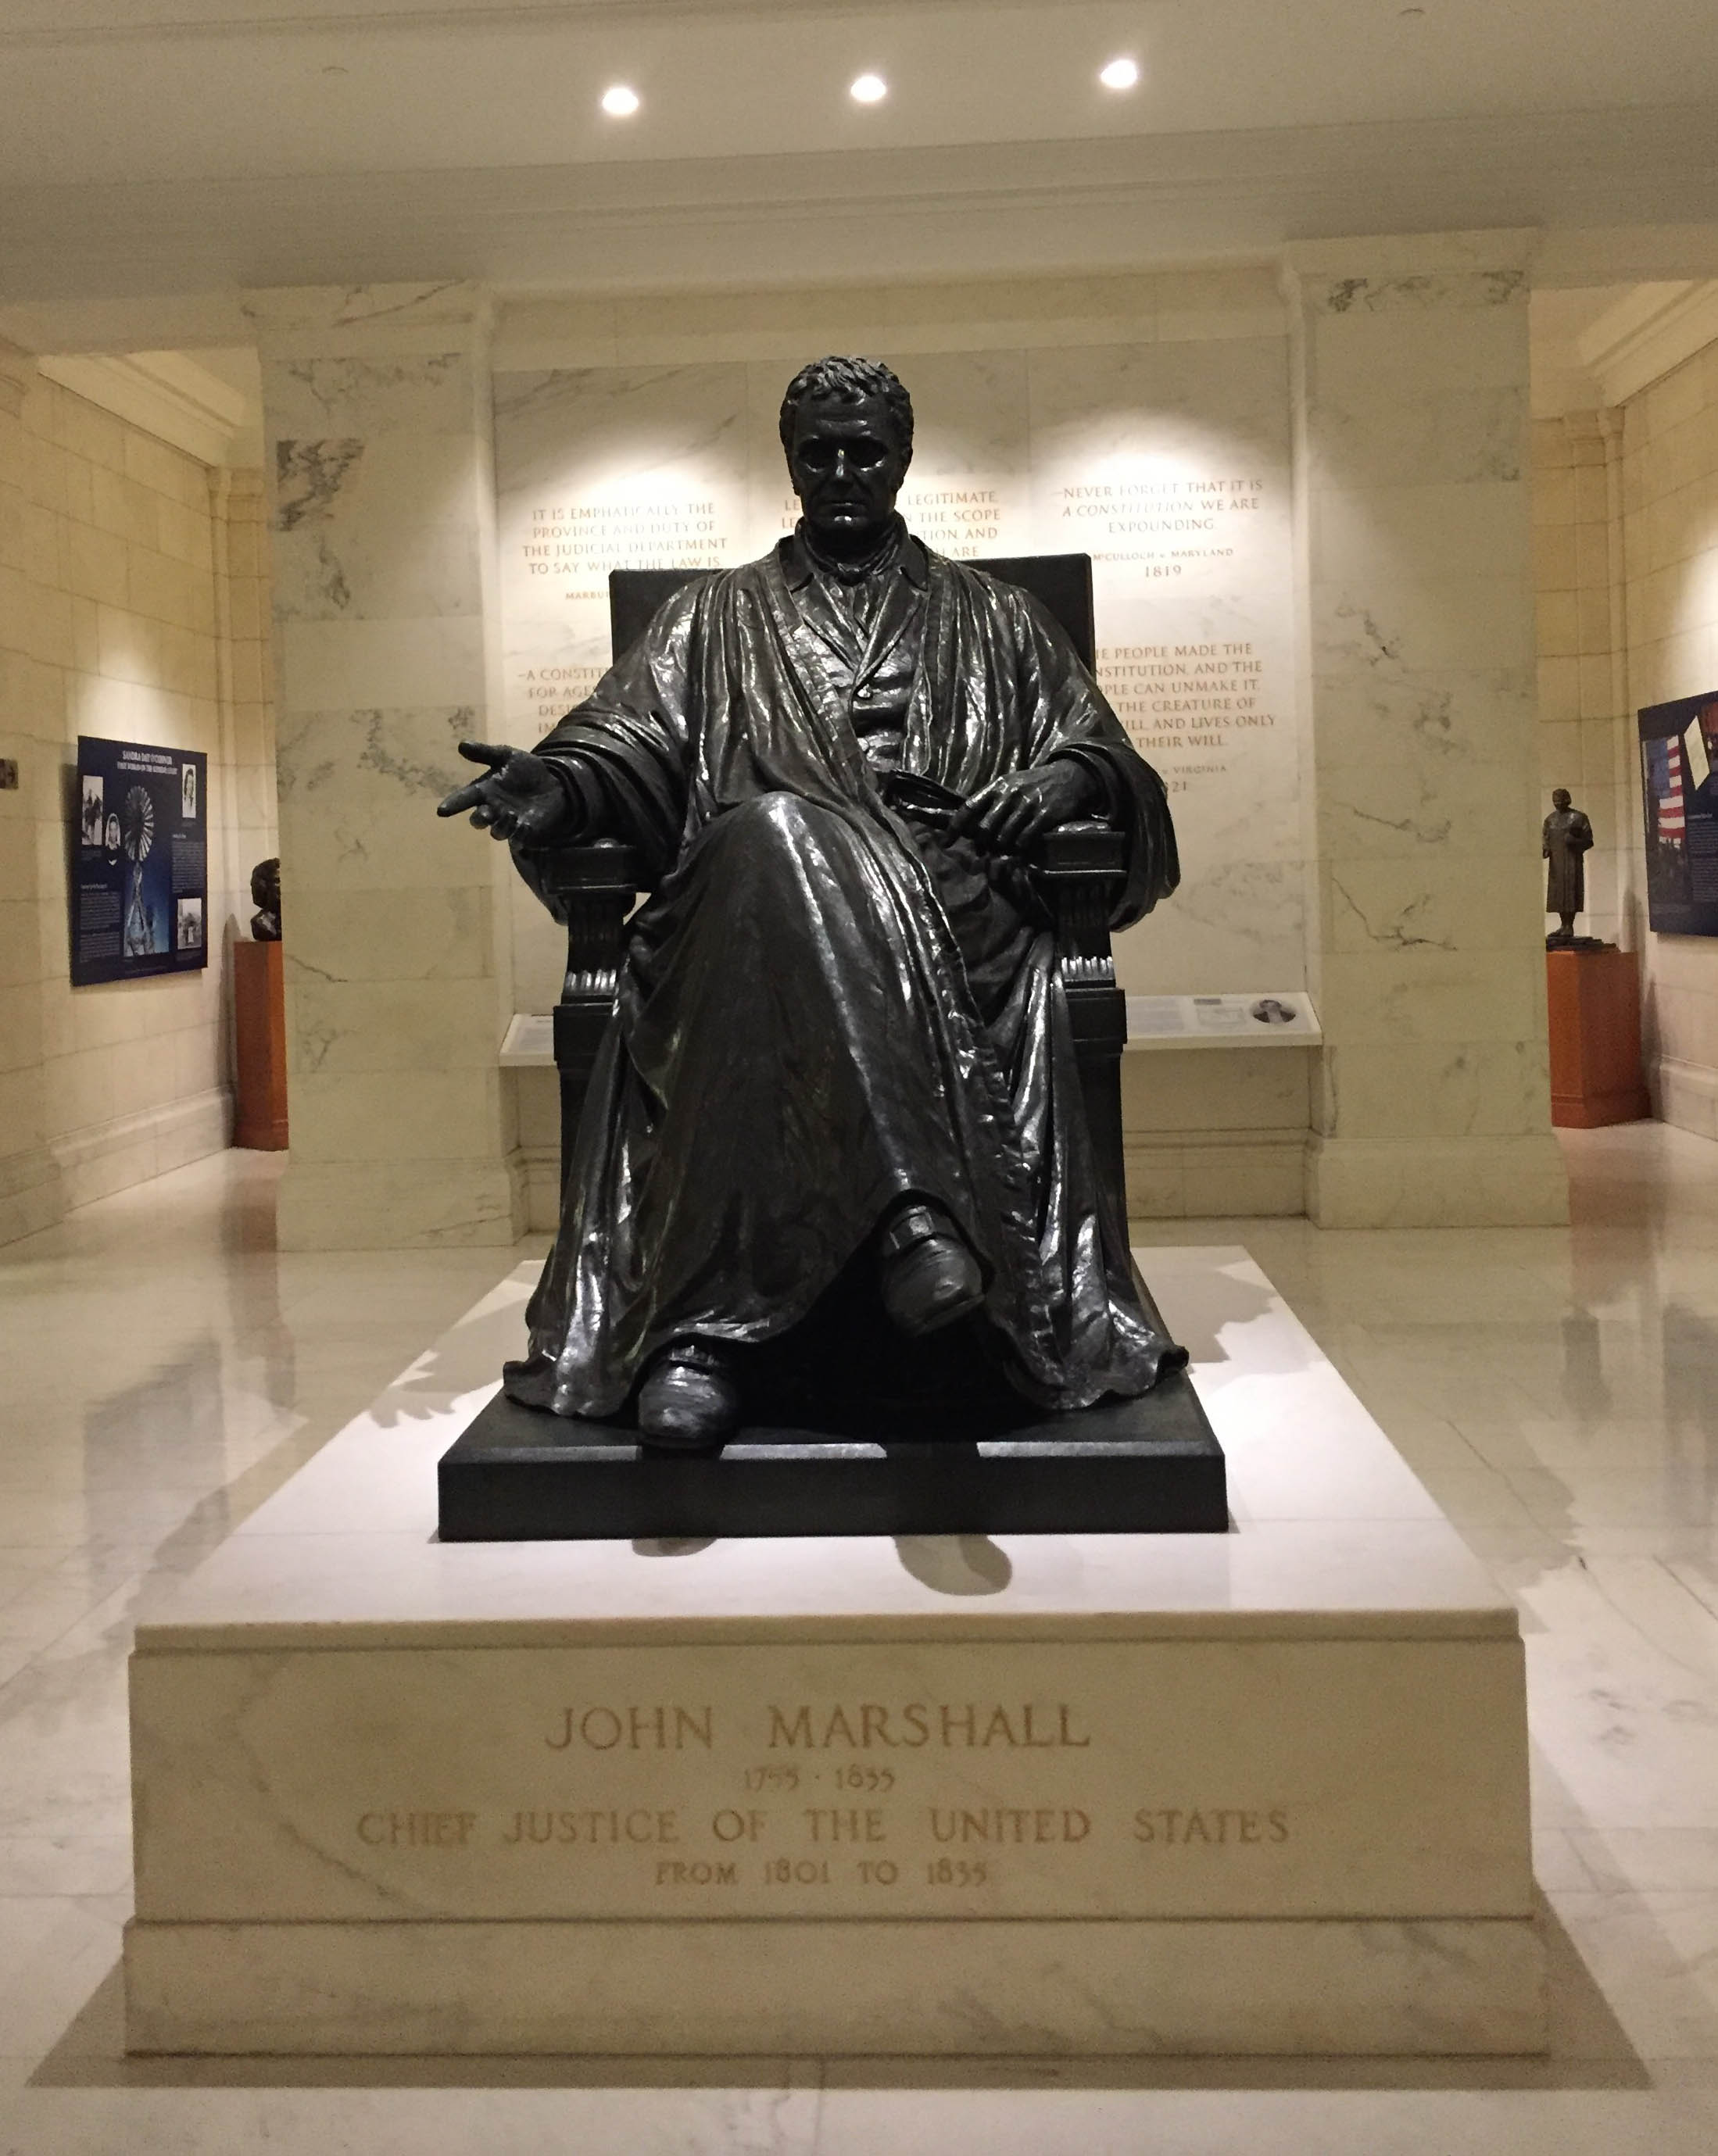 A statue of Chief Justice John Marshall at the U.S. Supreme Court. (Photo courtesy of Michele Deitch)